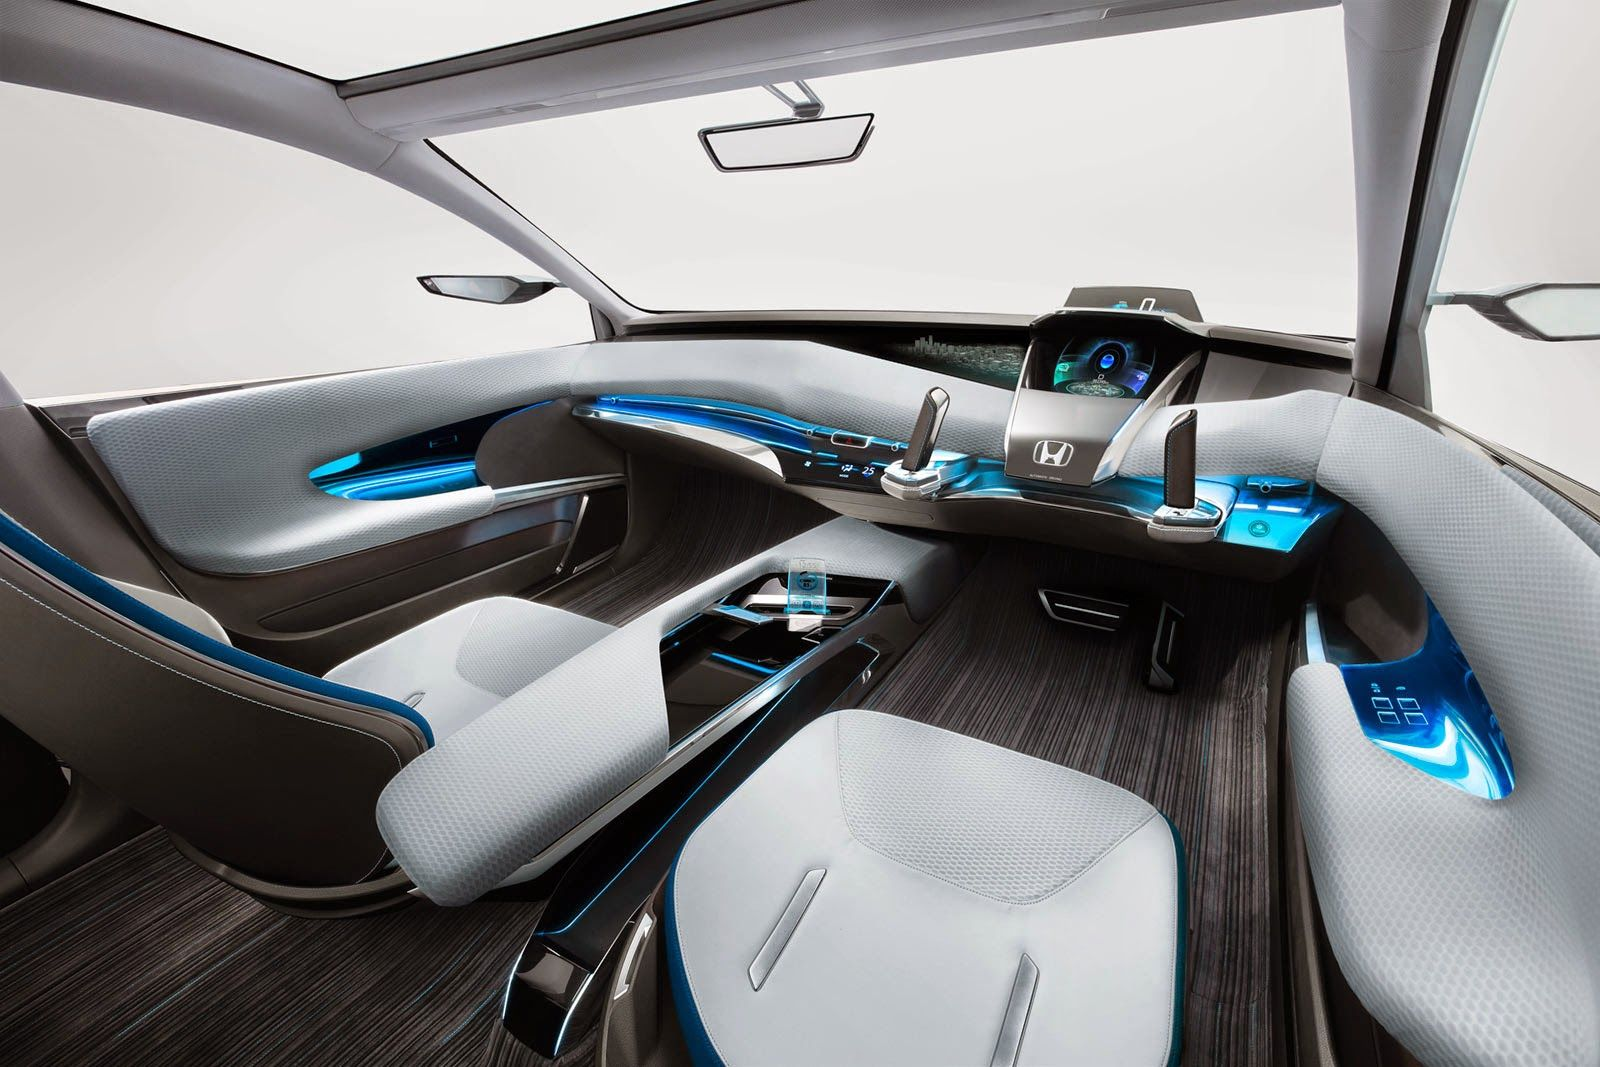 Pin By Iopan Design On Future Transport Pinterest Car Interiors